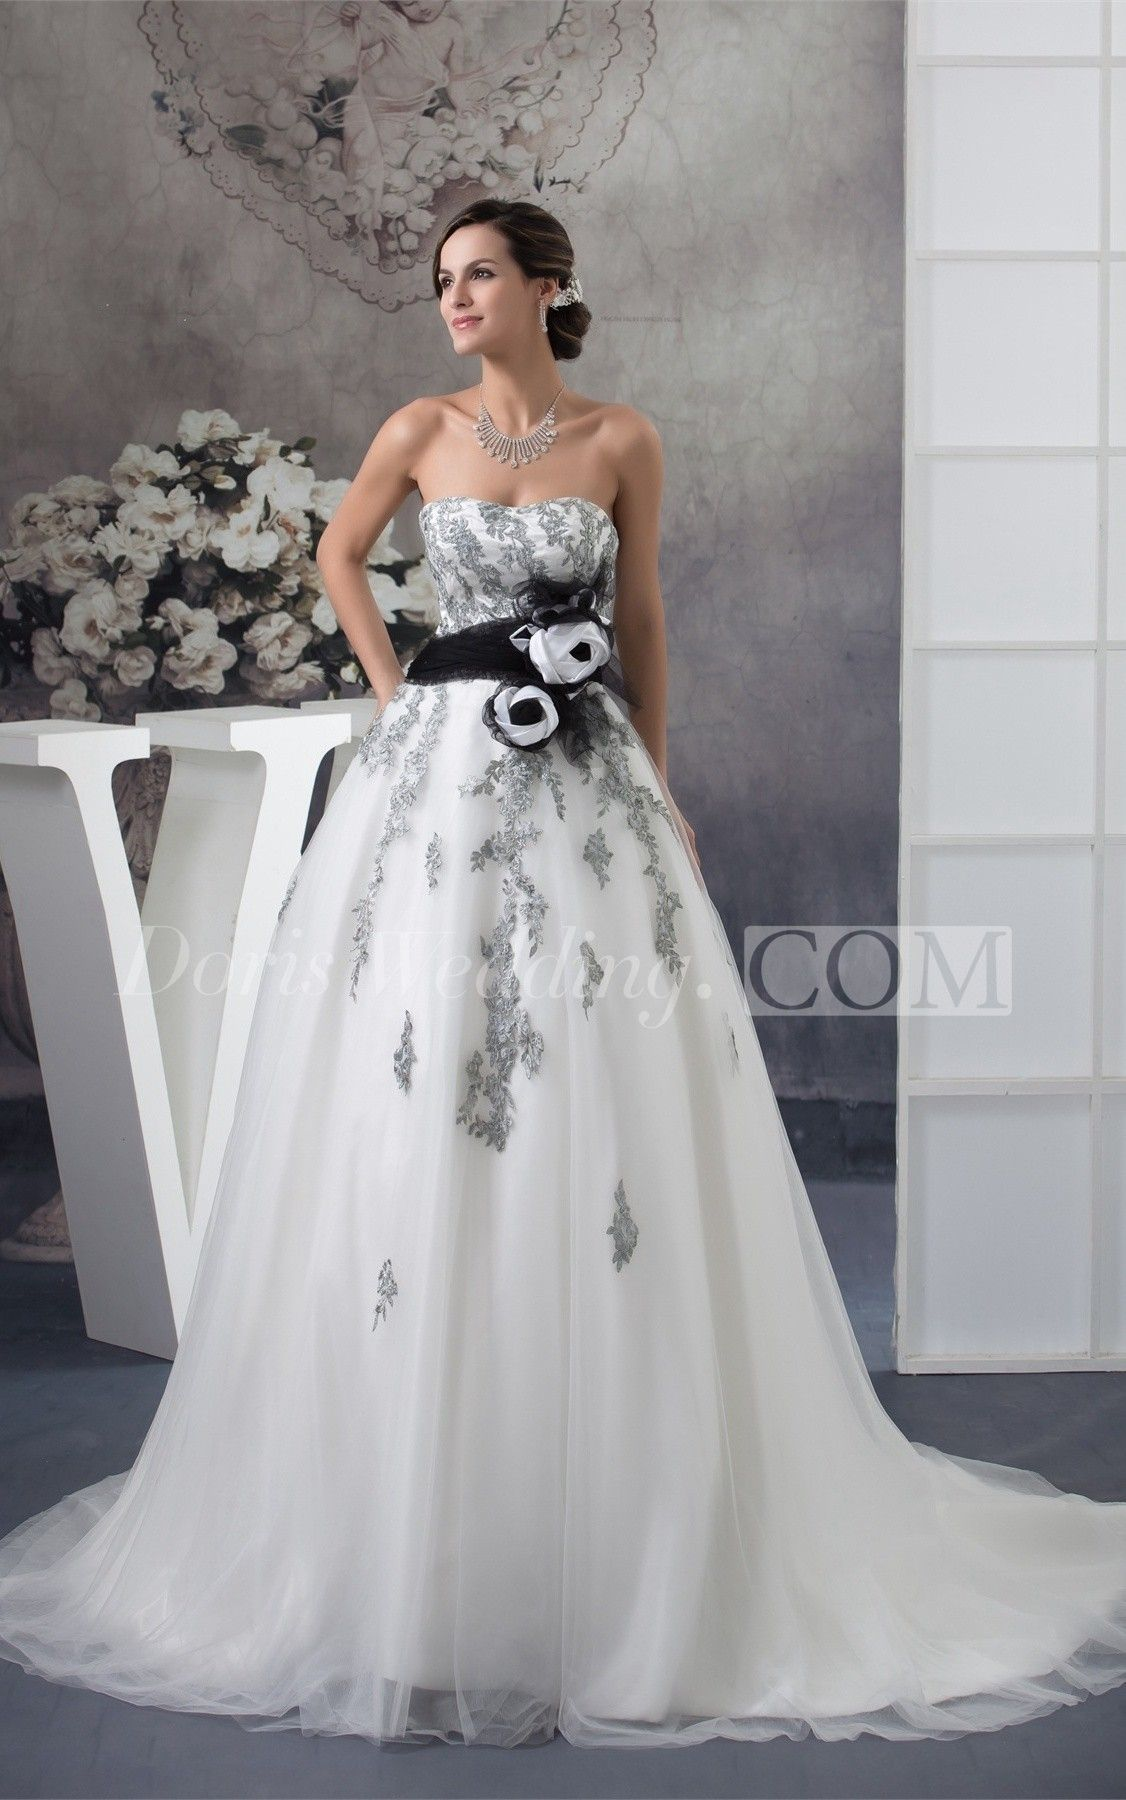 Sleeveless Appliqued Tulle Overlay And Ball Gown Black And White